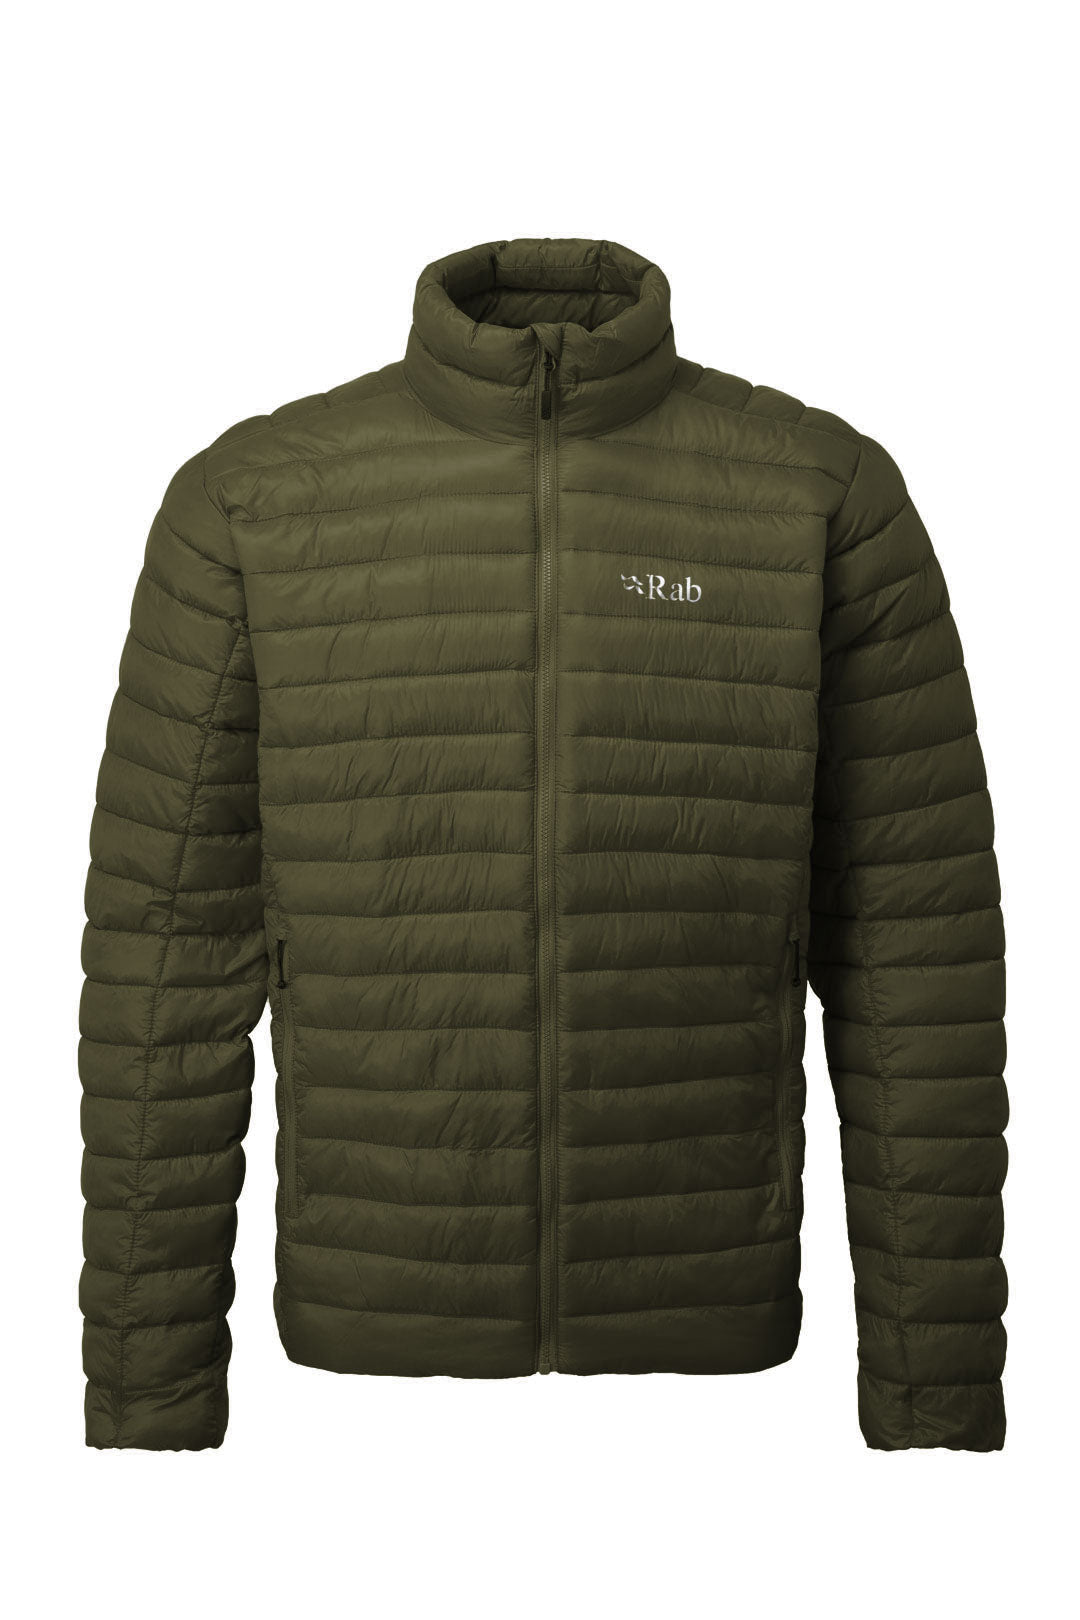 Rab Altus Lightweight Jacket for Men in Army